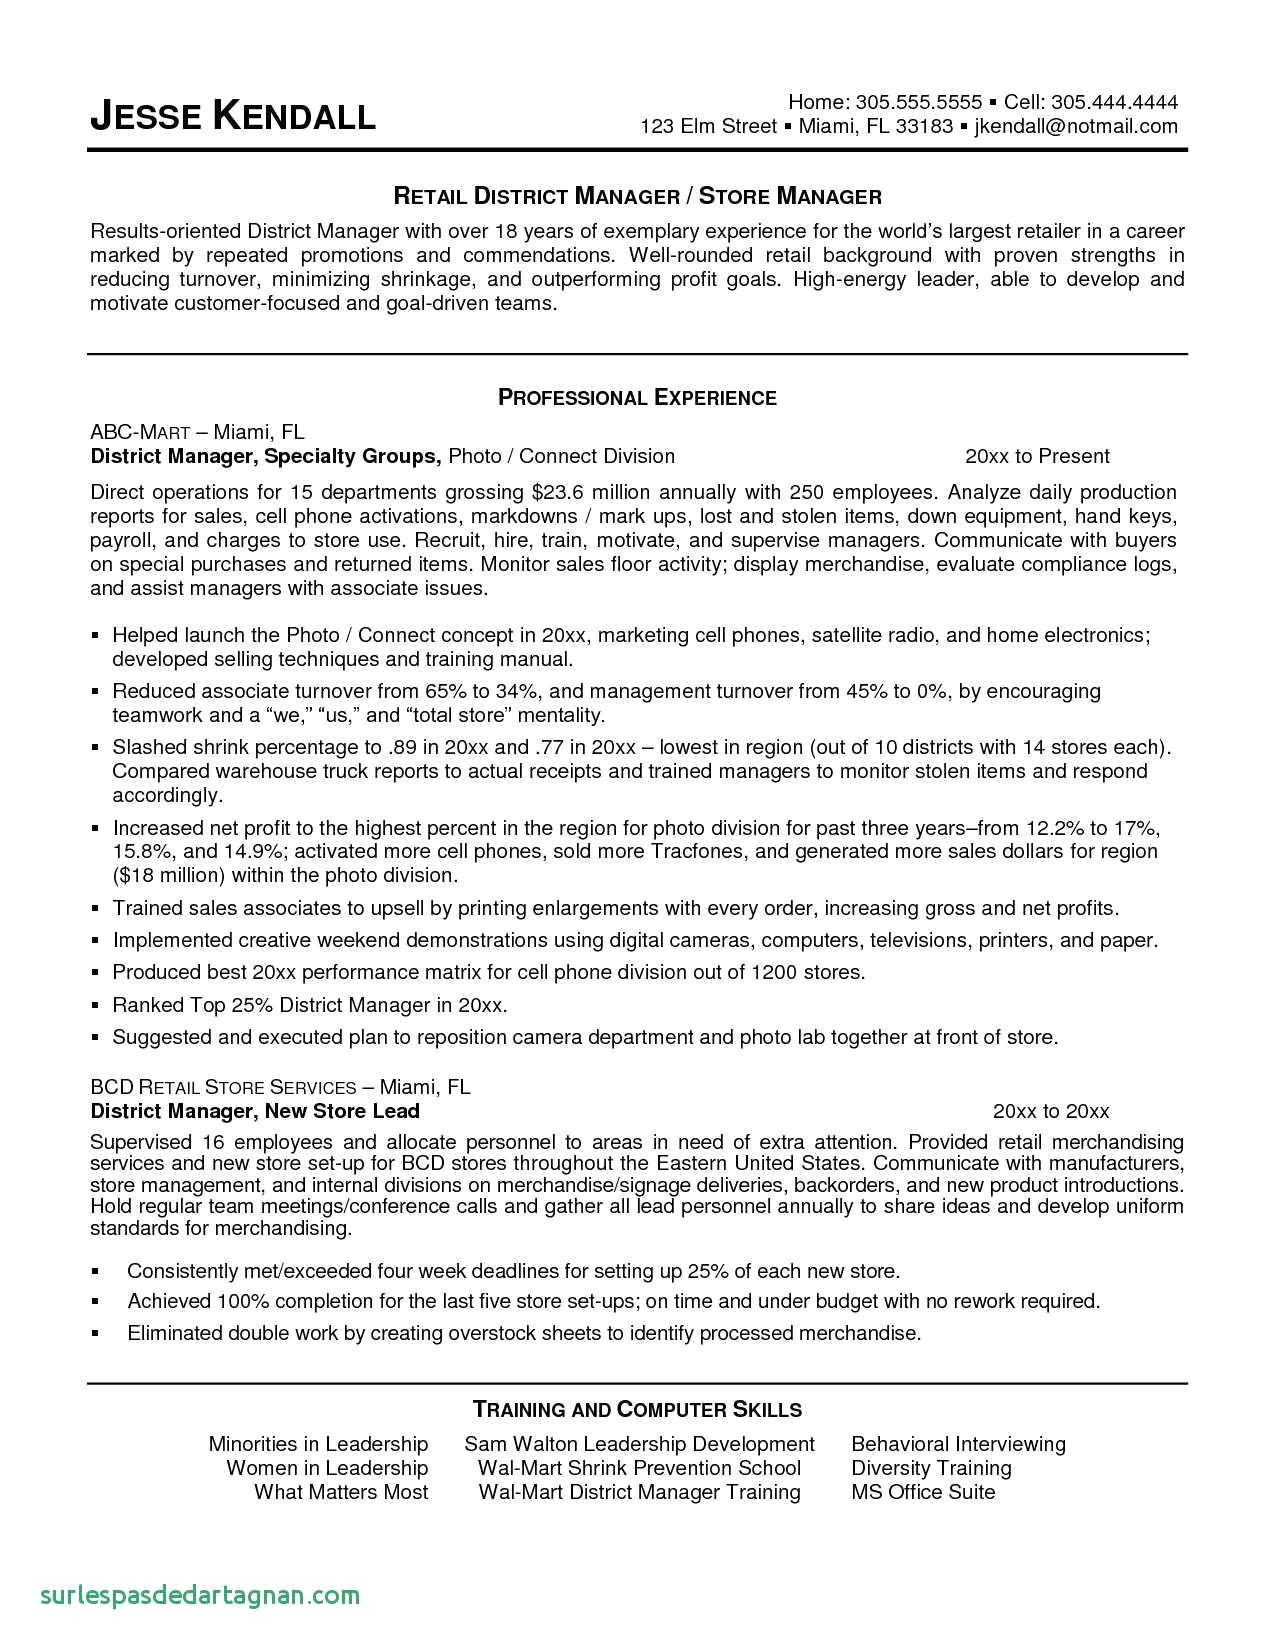 Resume Personal Statement - format Of A Personal Statement